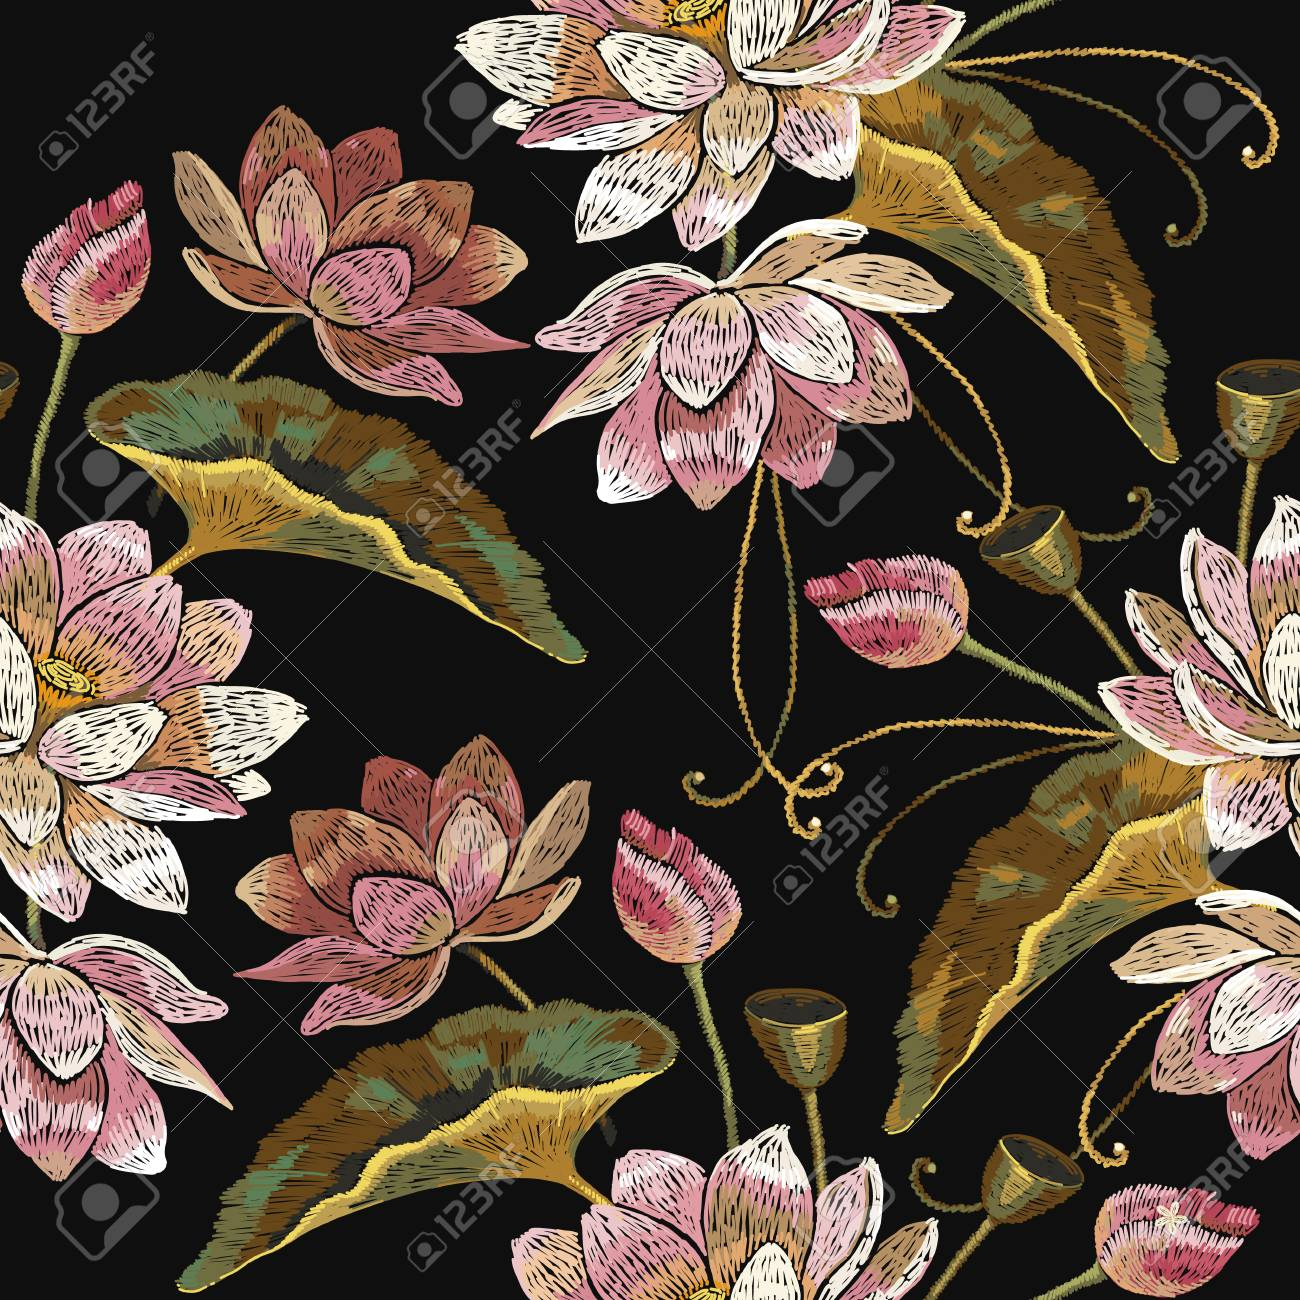 Embroidery Lotus Flowers Seamless Pattern Classical Embroidery